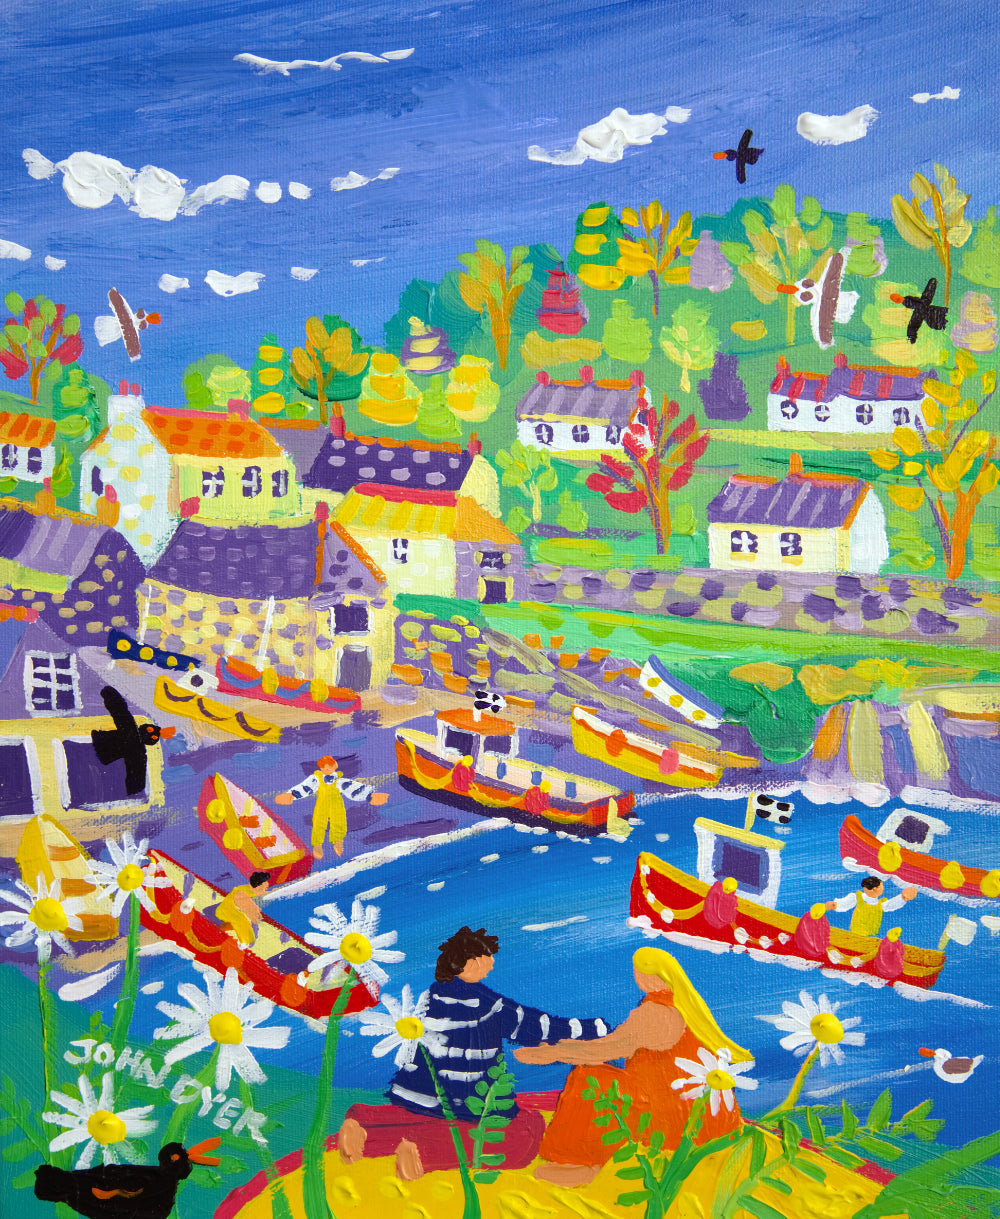 John Dyer Painting. Cadgwith Picnic